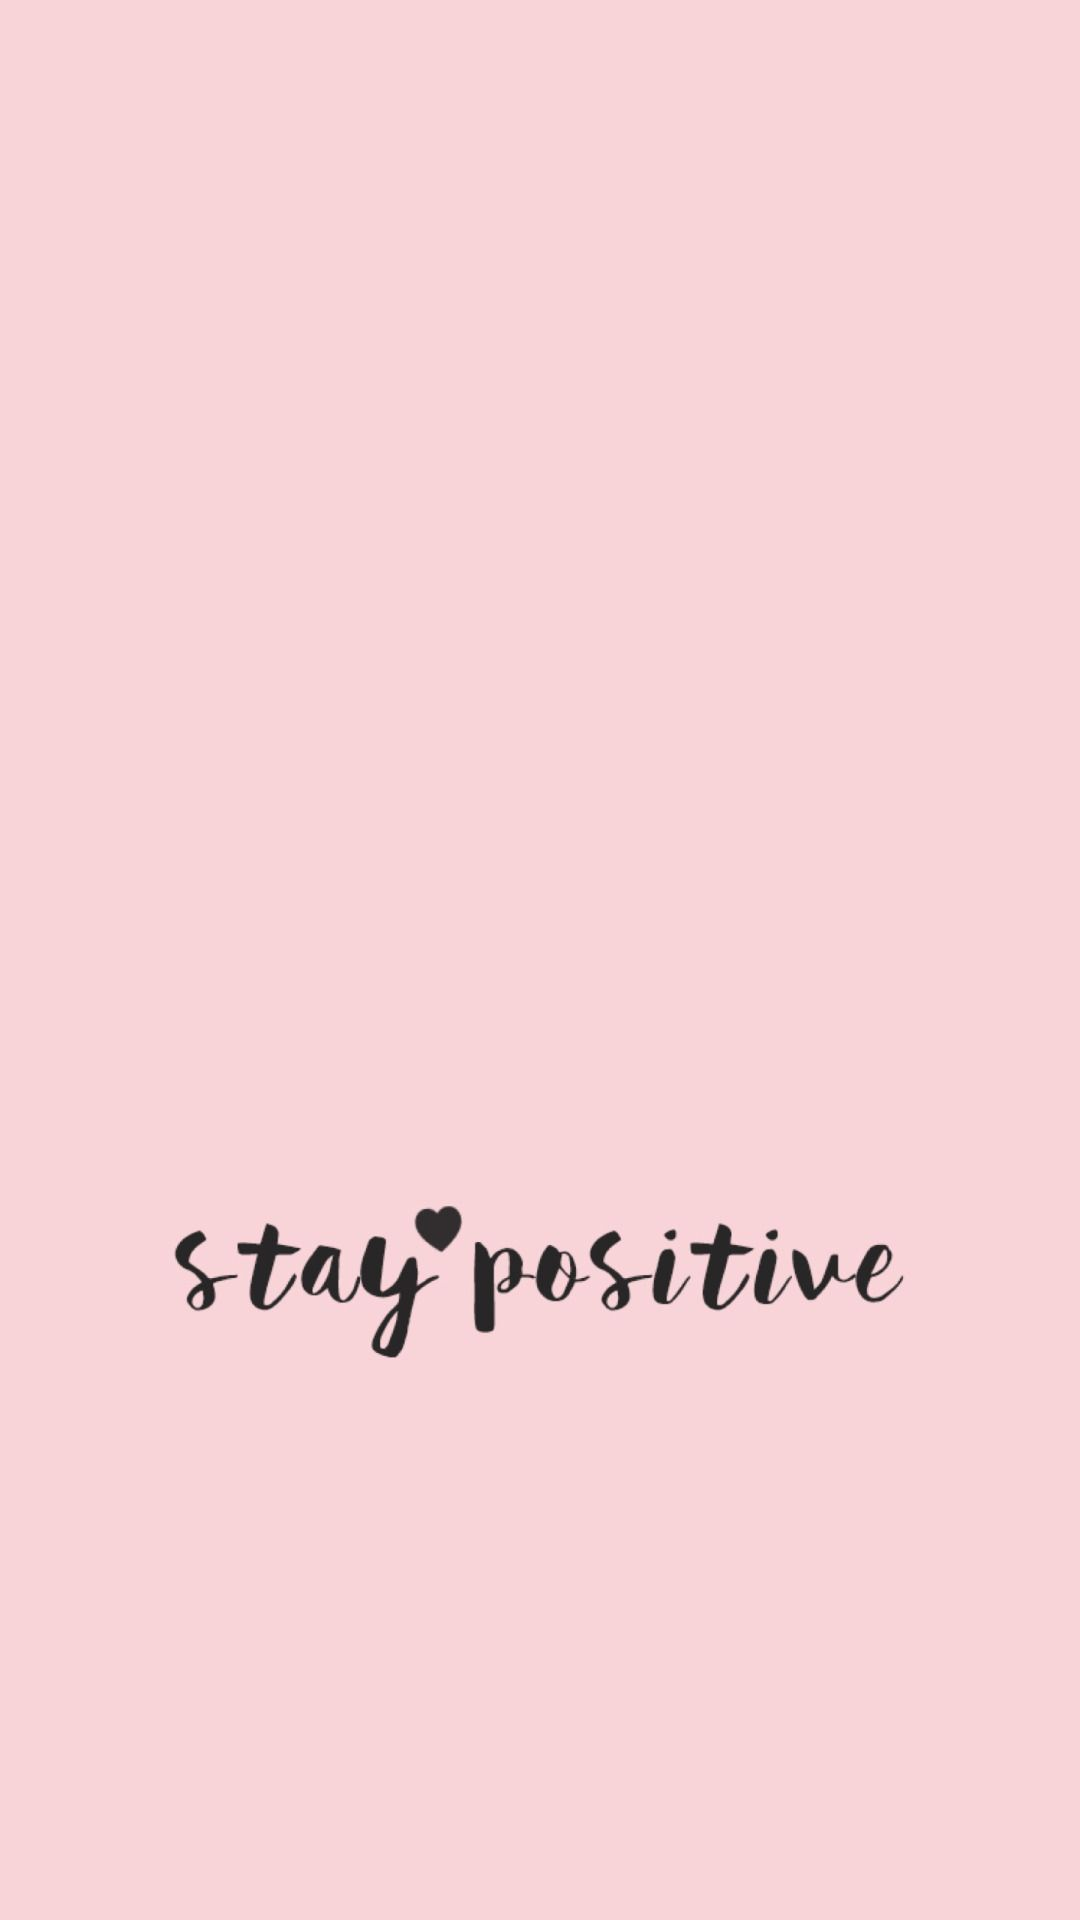 Pin By Kanza Rehan On Wallpapers Wallpaper Iphone Quotes Wallpaper Quotes Baby Pink Wallpaper Iphone